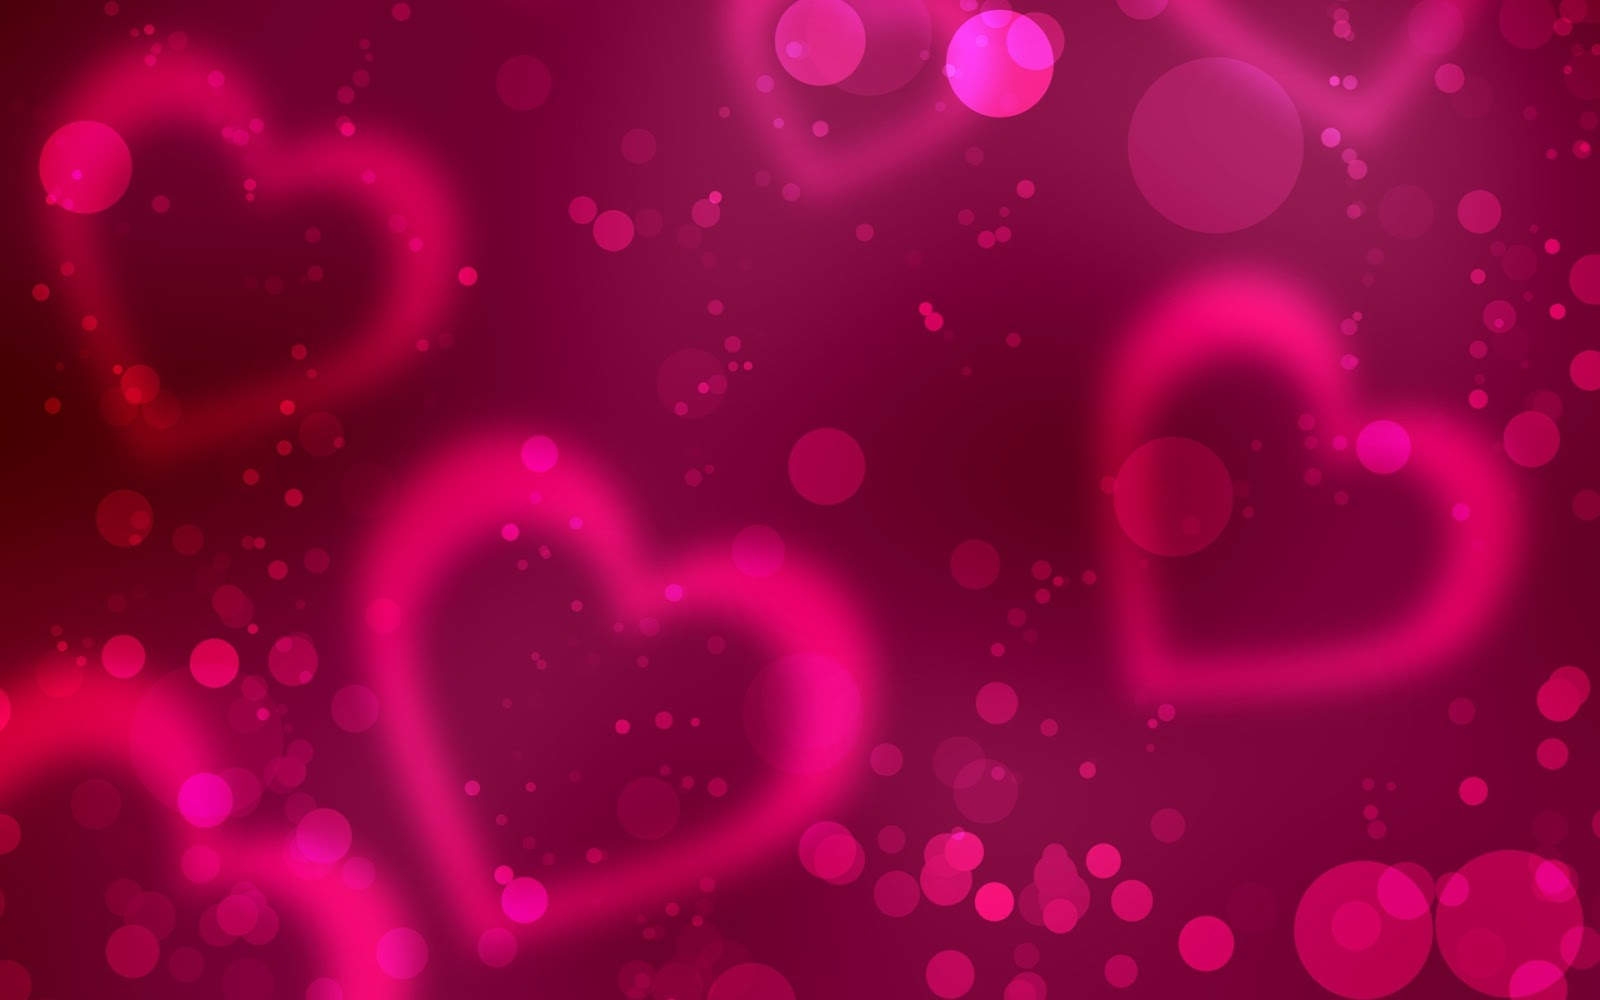 Love Wallpaper Backgrounds 19152 1600x1000 px ~ HDWallSource.com